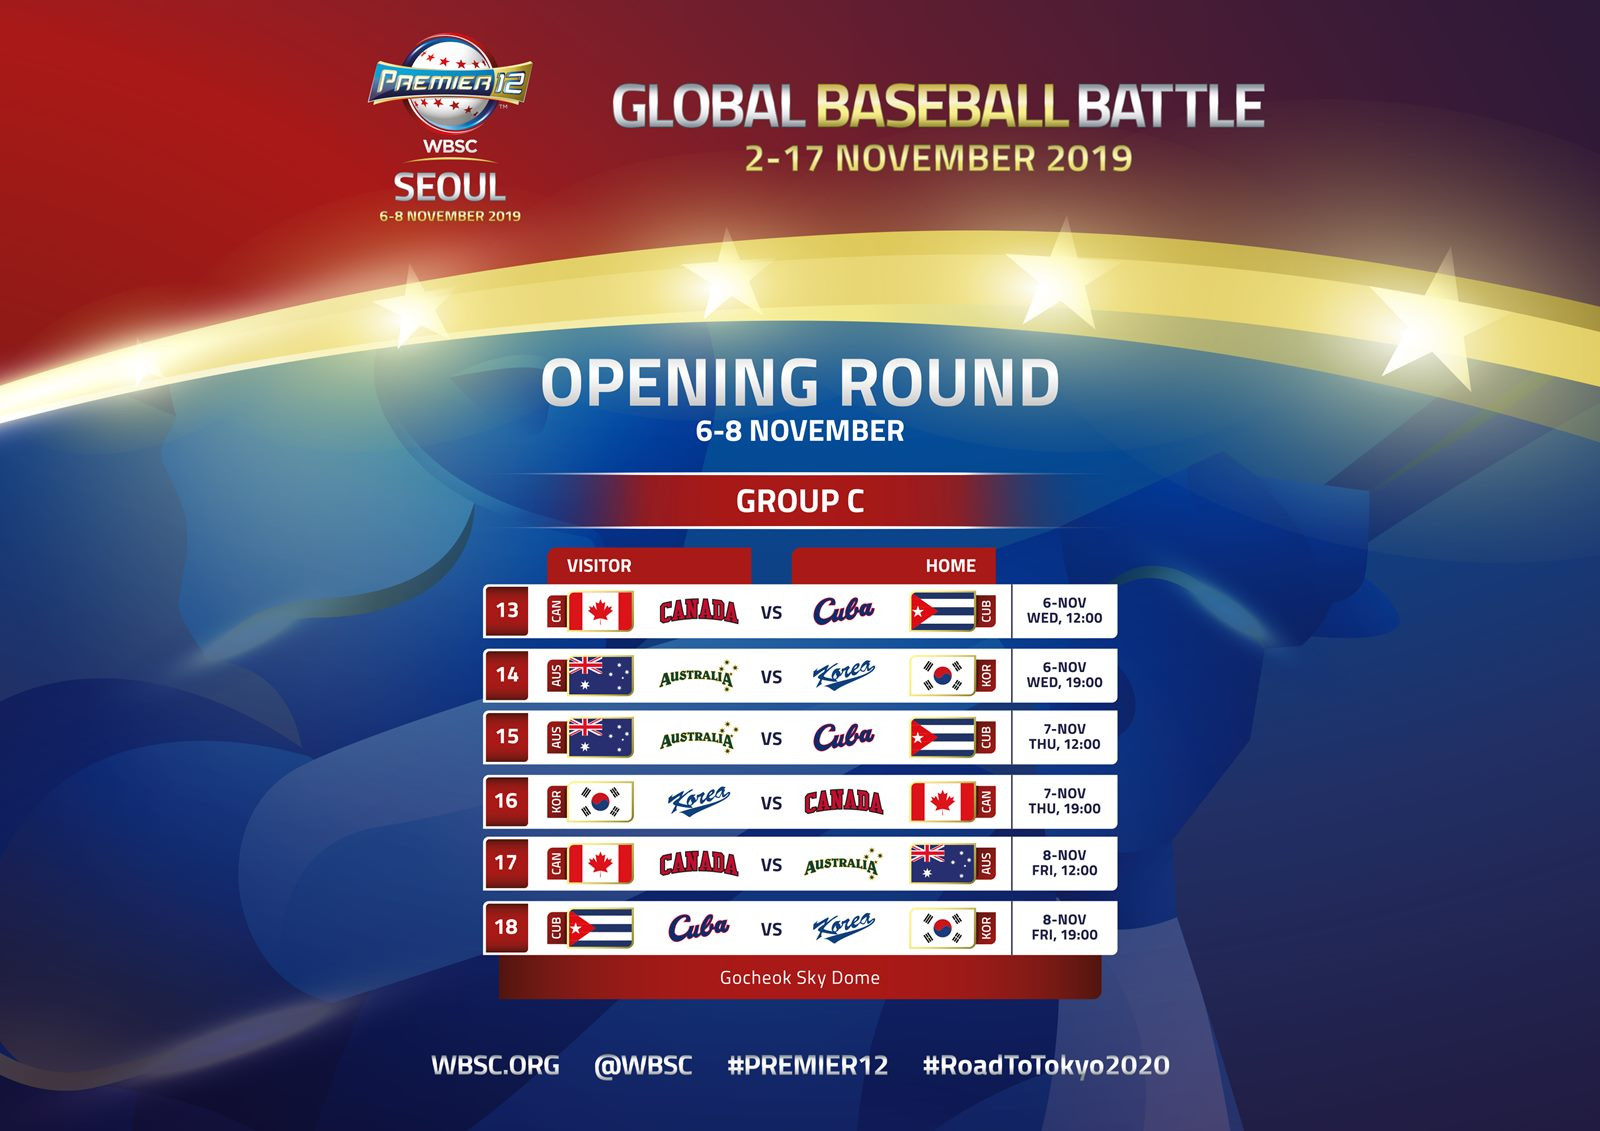 Seoul Group C schedule for 2019 WBSC Premier12, Korean legend Seung-Yuop Lee named Ambassador